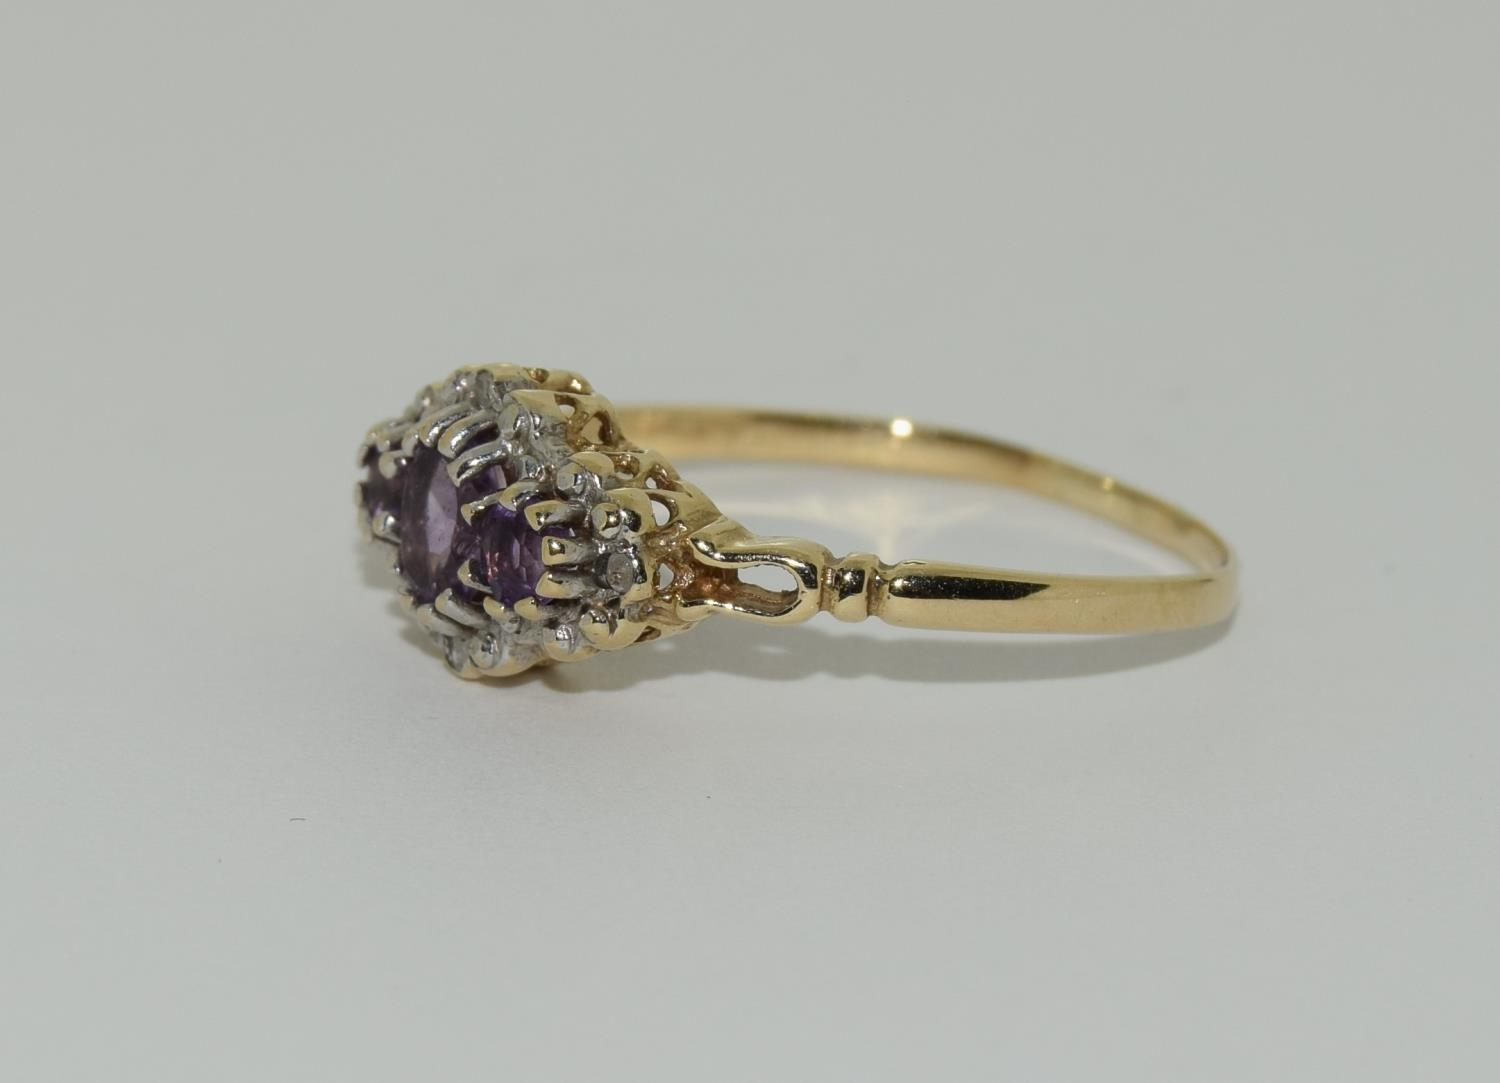 Vintage 9ct gold amethyst and diamond ring. 1.9grams, size R. - Image 4 of 6